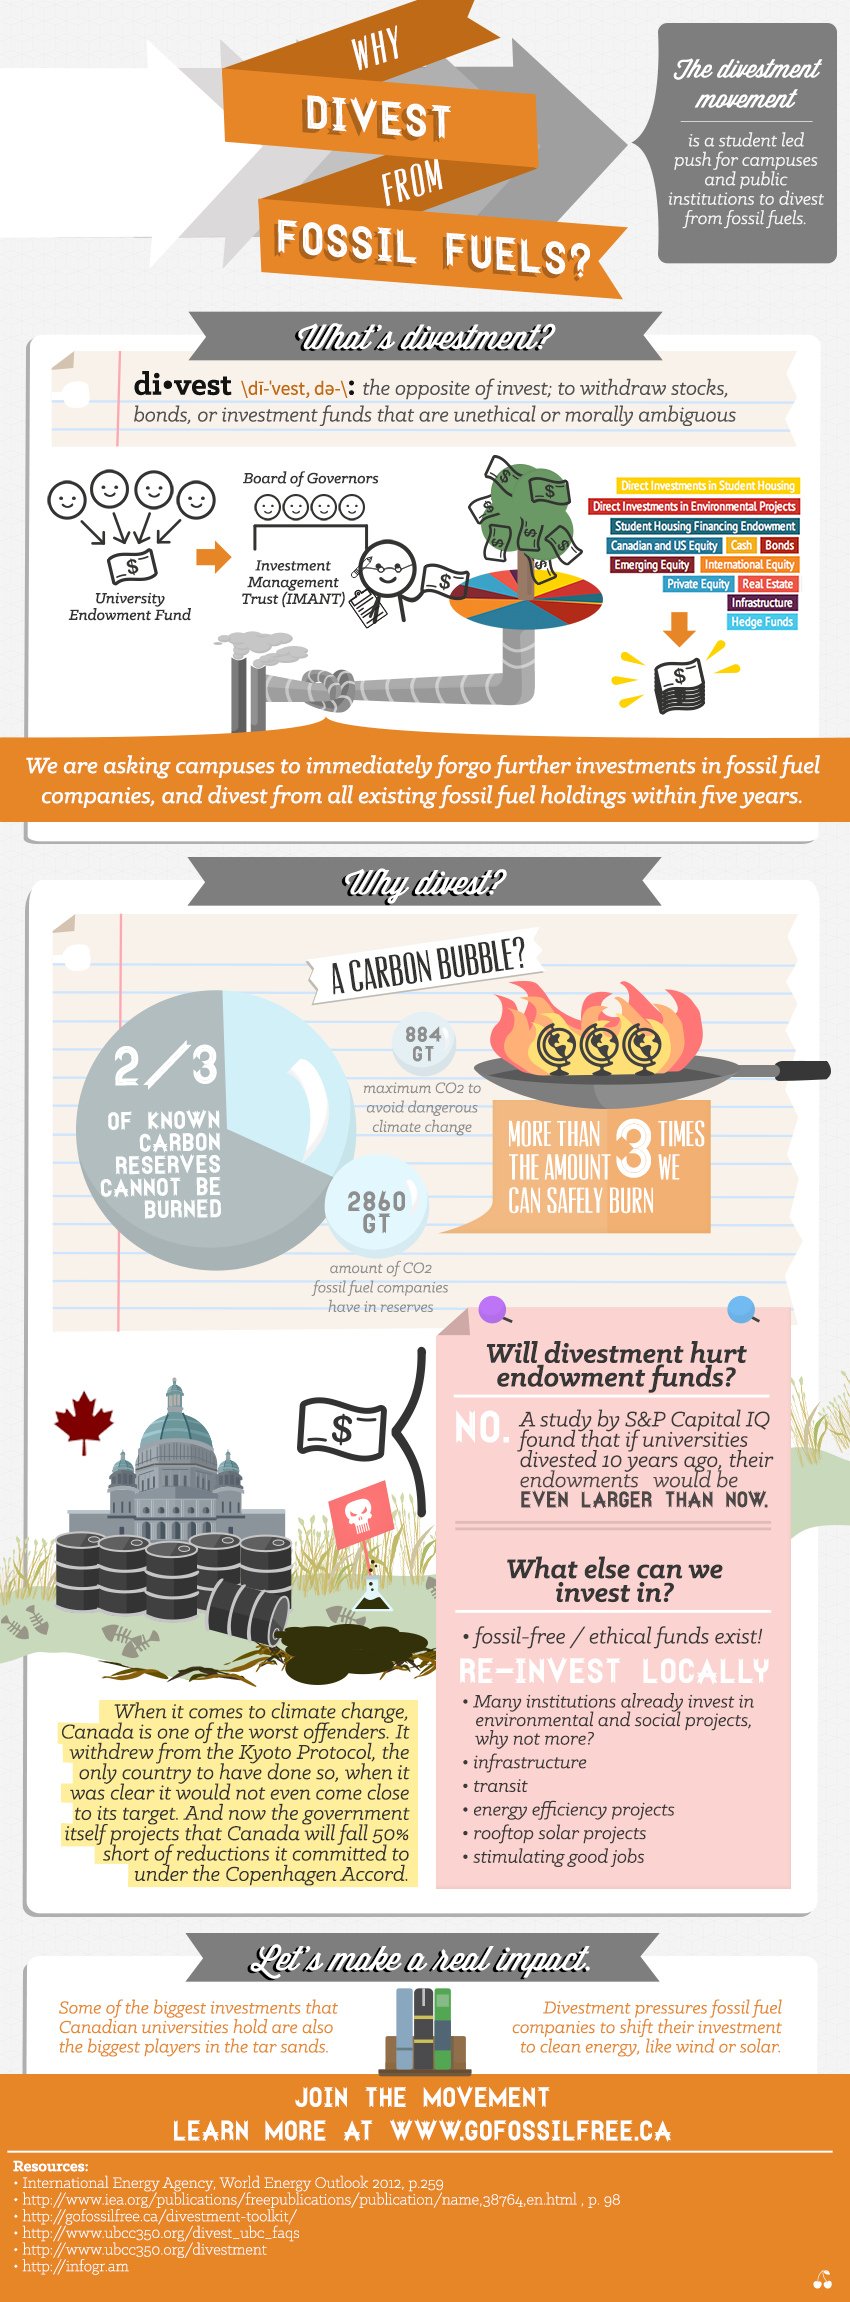 Why Divest Infographic